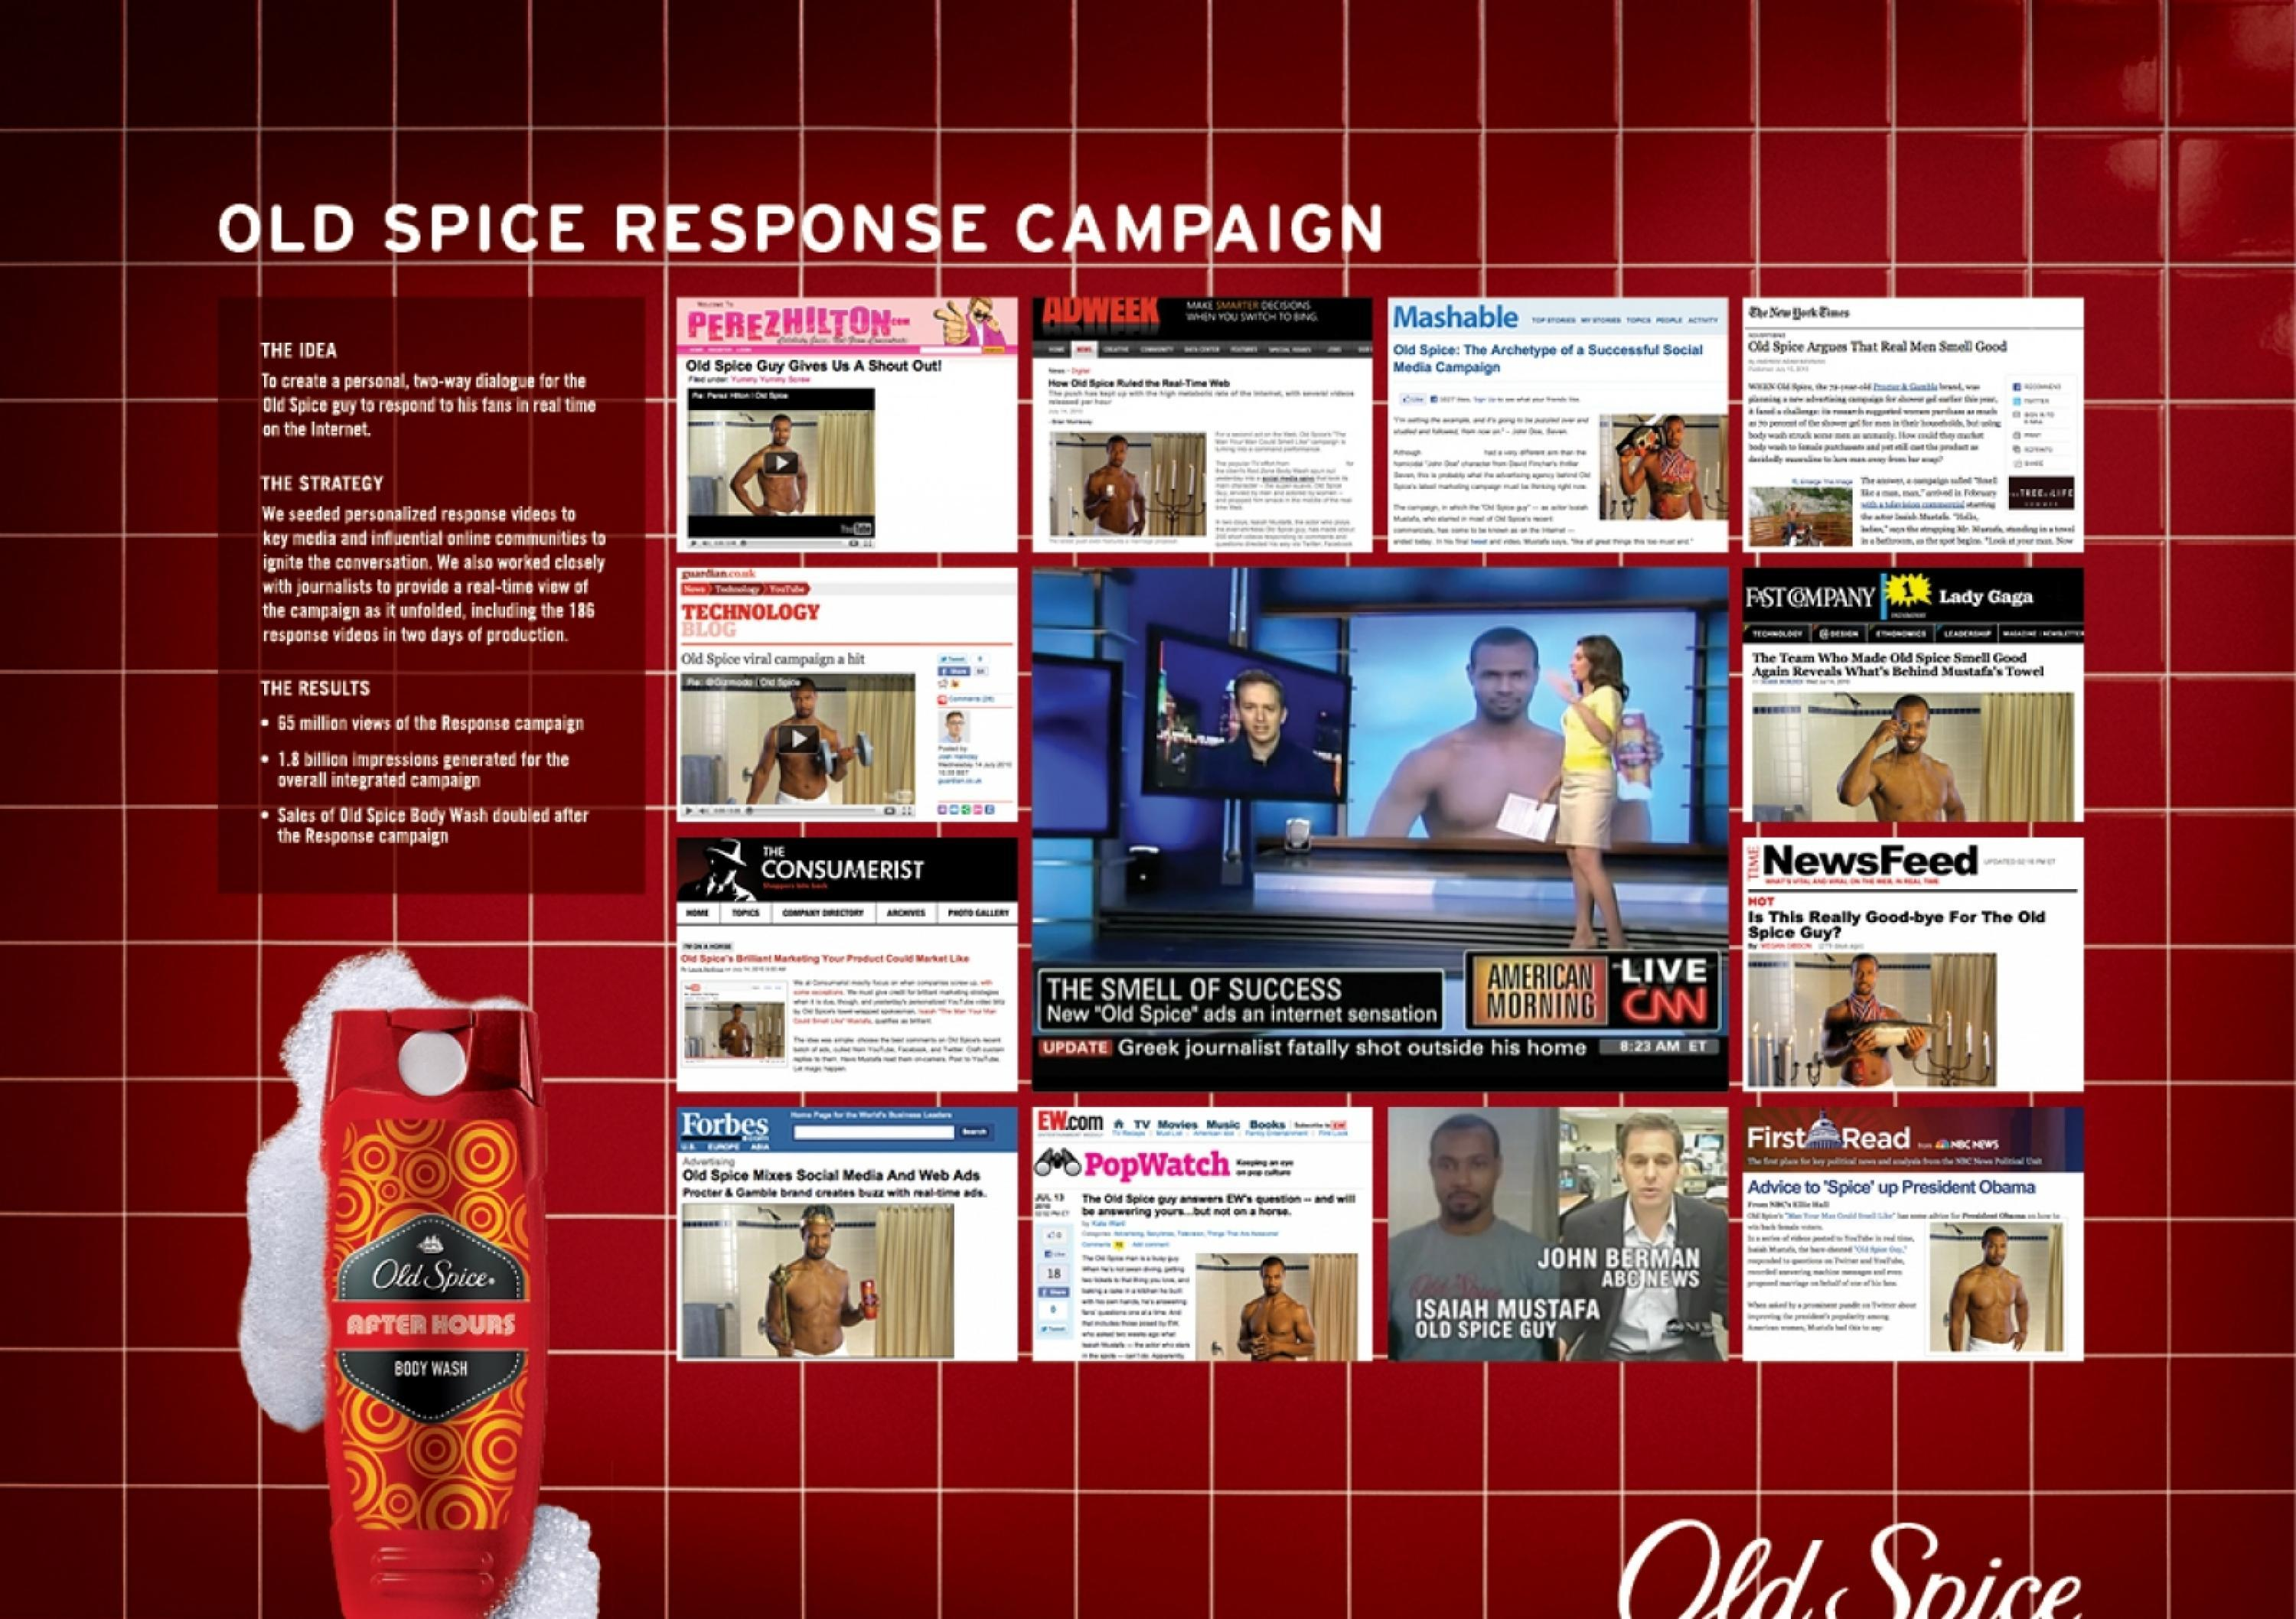 advertising the old spice ad campaign